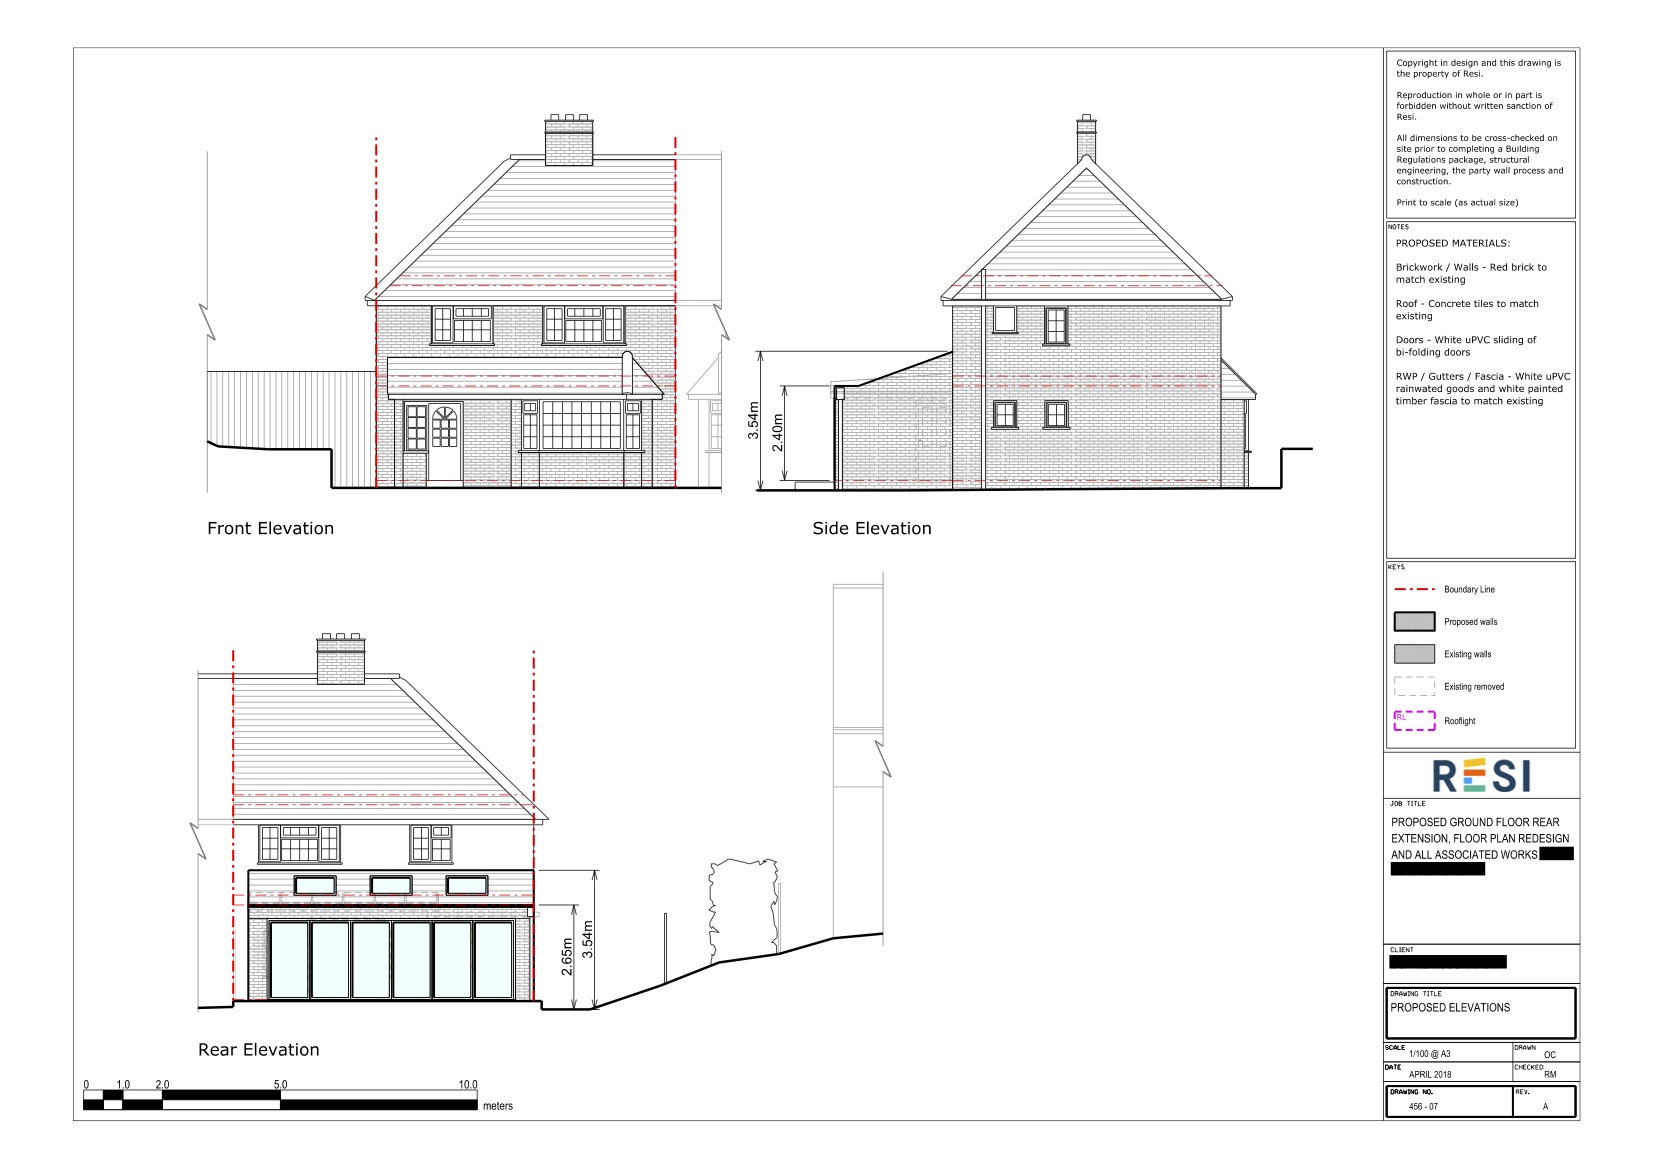 Architectural drawings rev a 10   elevations